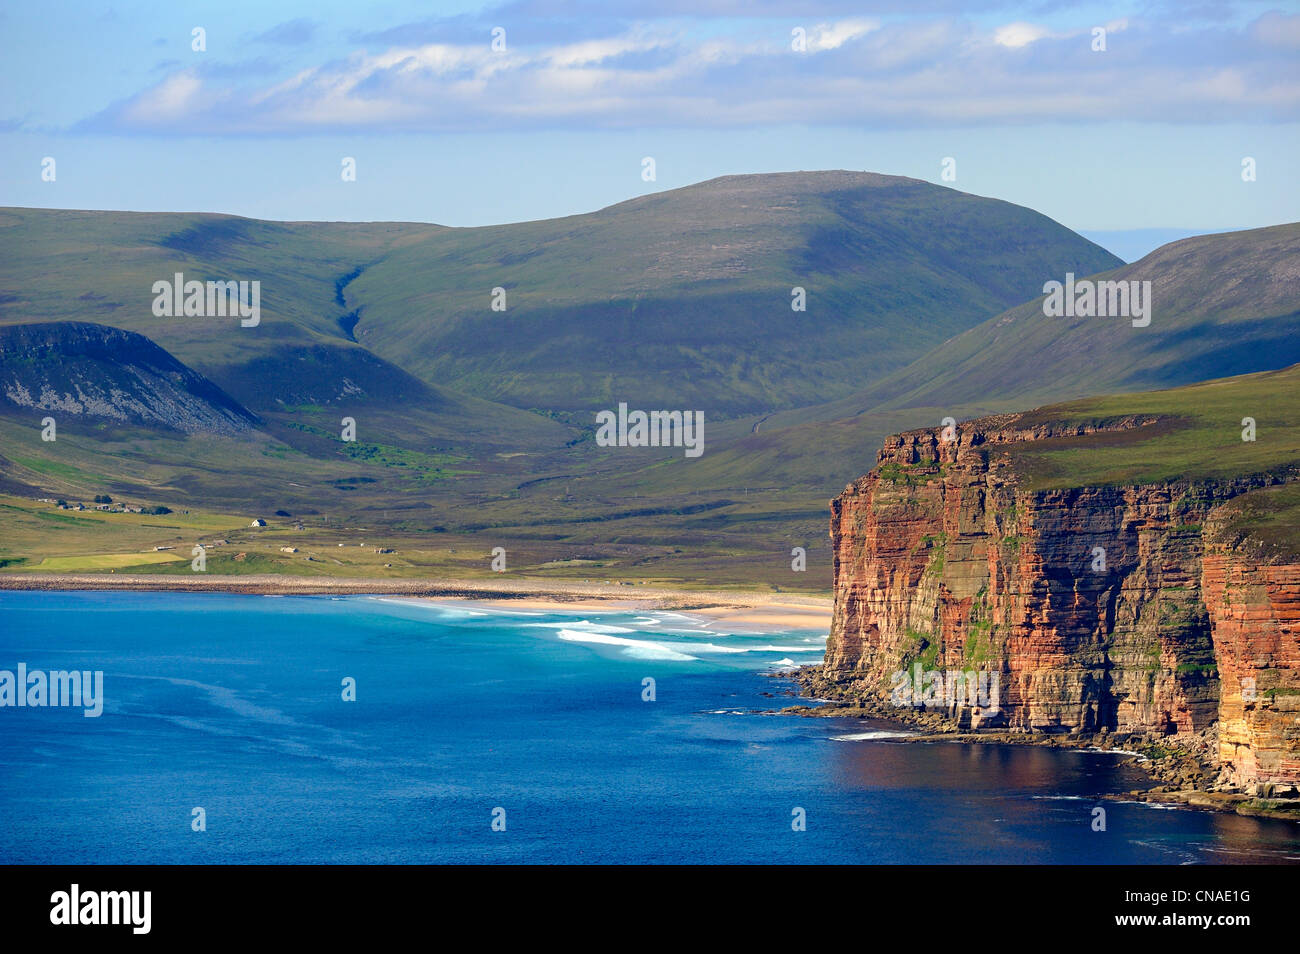 United Kingdom, Scotland, Orkney Islands, cliffs of the Island of Hoy on the Atlantic coast south of Rackwick (aerial - Stock Image